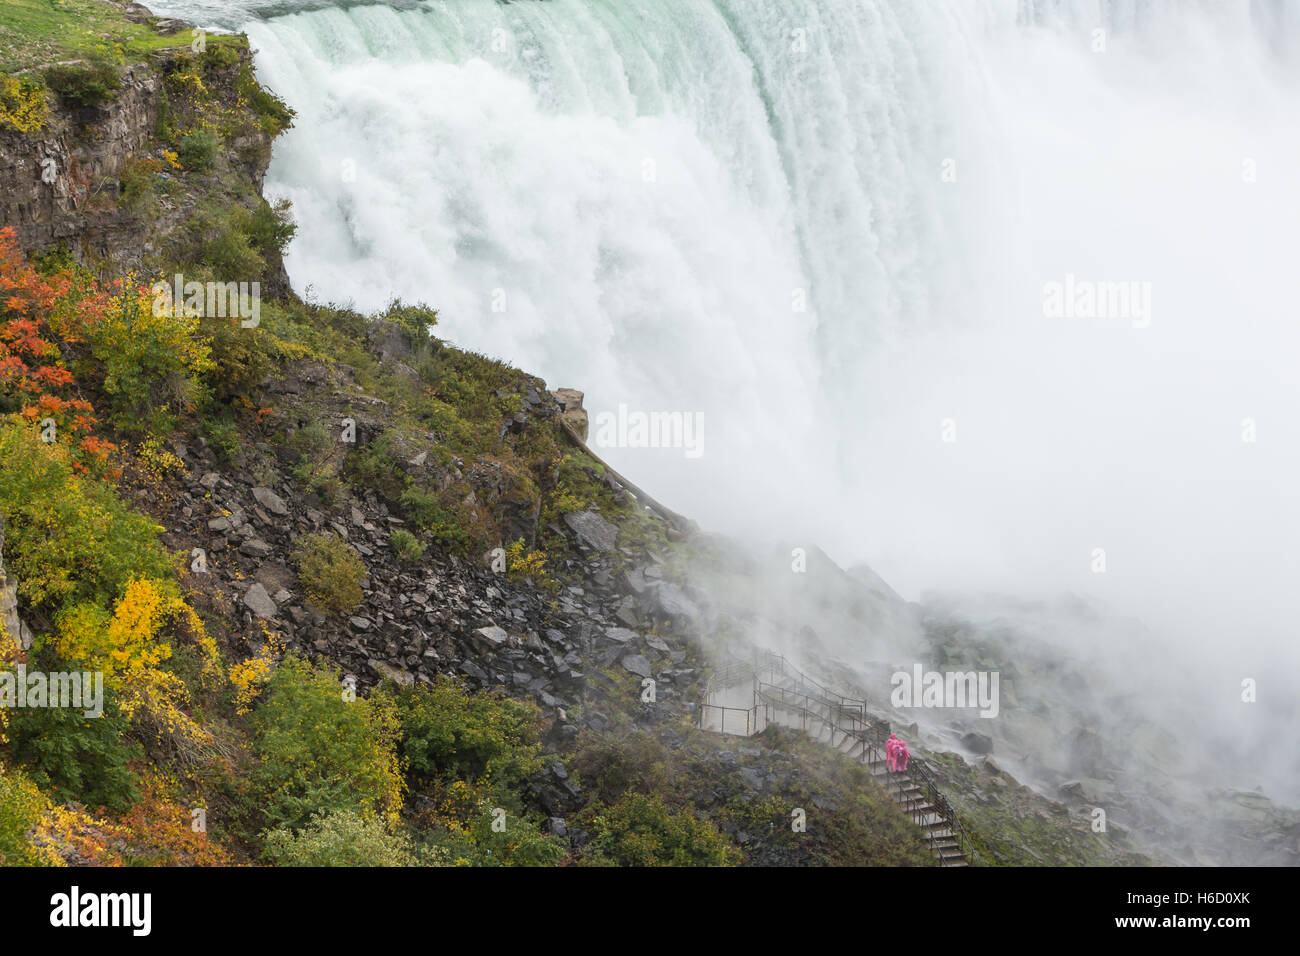 People in rain ponchos brave the mist and spray from the American Falls on the walk to the Crows Nest in Niagara Stock Photo